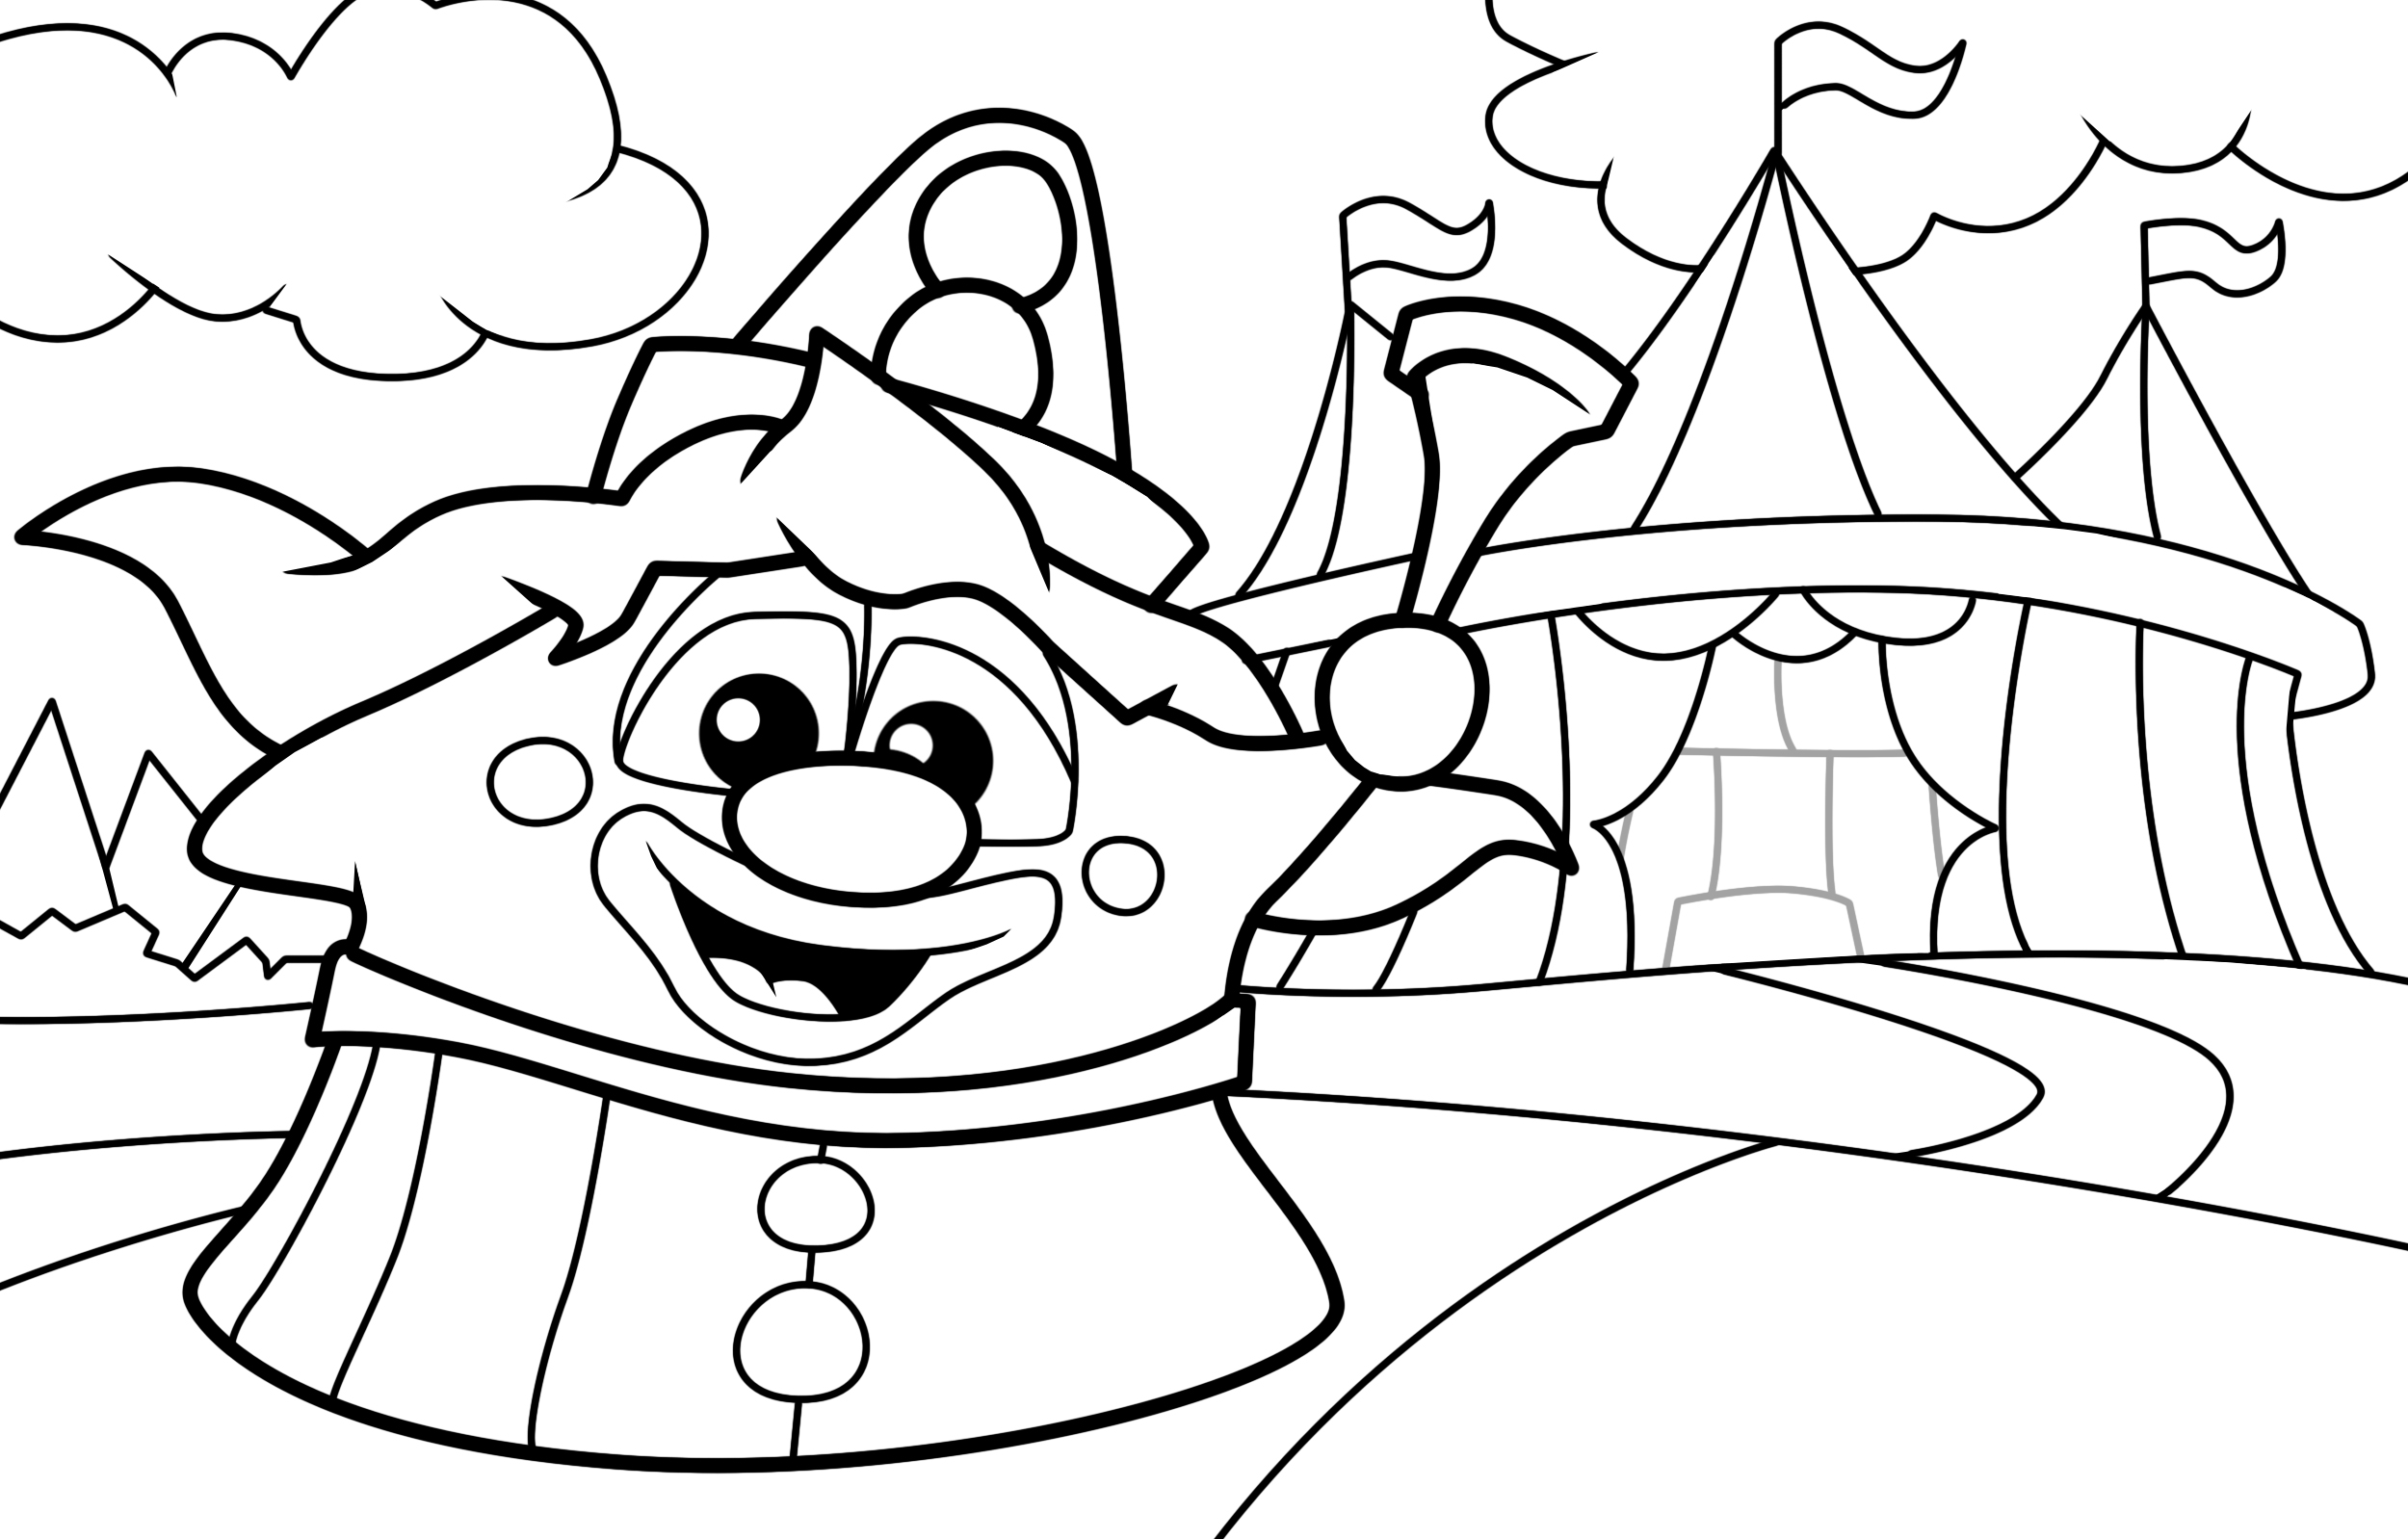 hello kitty 067 furthermore printable coloring pages of playground 315x200 together with  also clubmomcoloringplayground further  in addition  also playground coloring page hand drawn kids 86598503 moreover  in addition childern coloring pages 30 moreover  additionally . on playground coloring pages printable